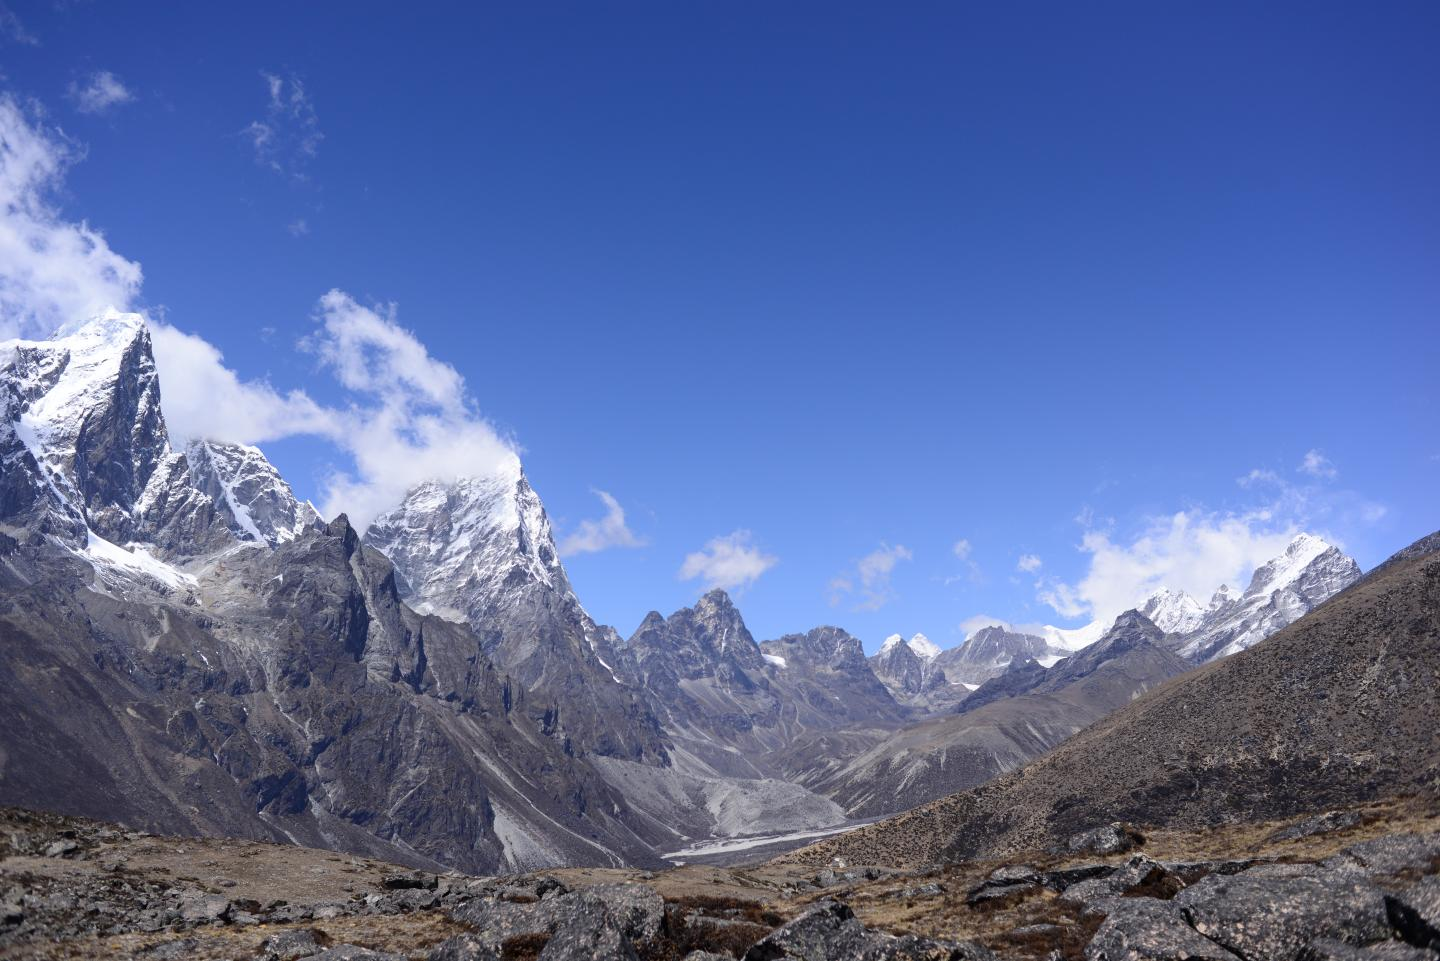 Subnival Vegetation in the Himalayan Region (1 of 3)